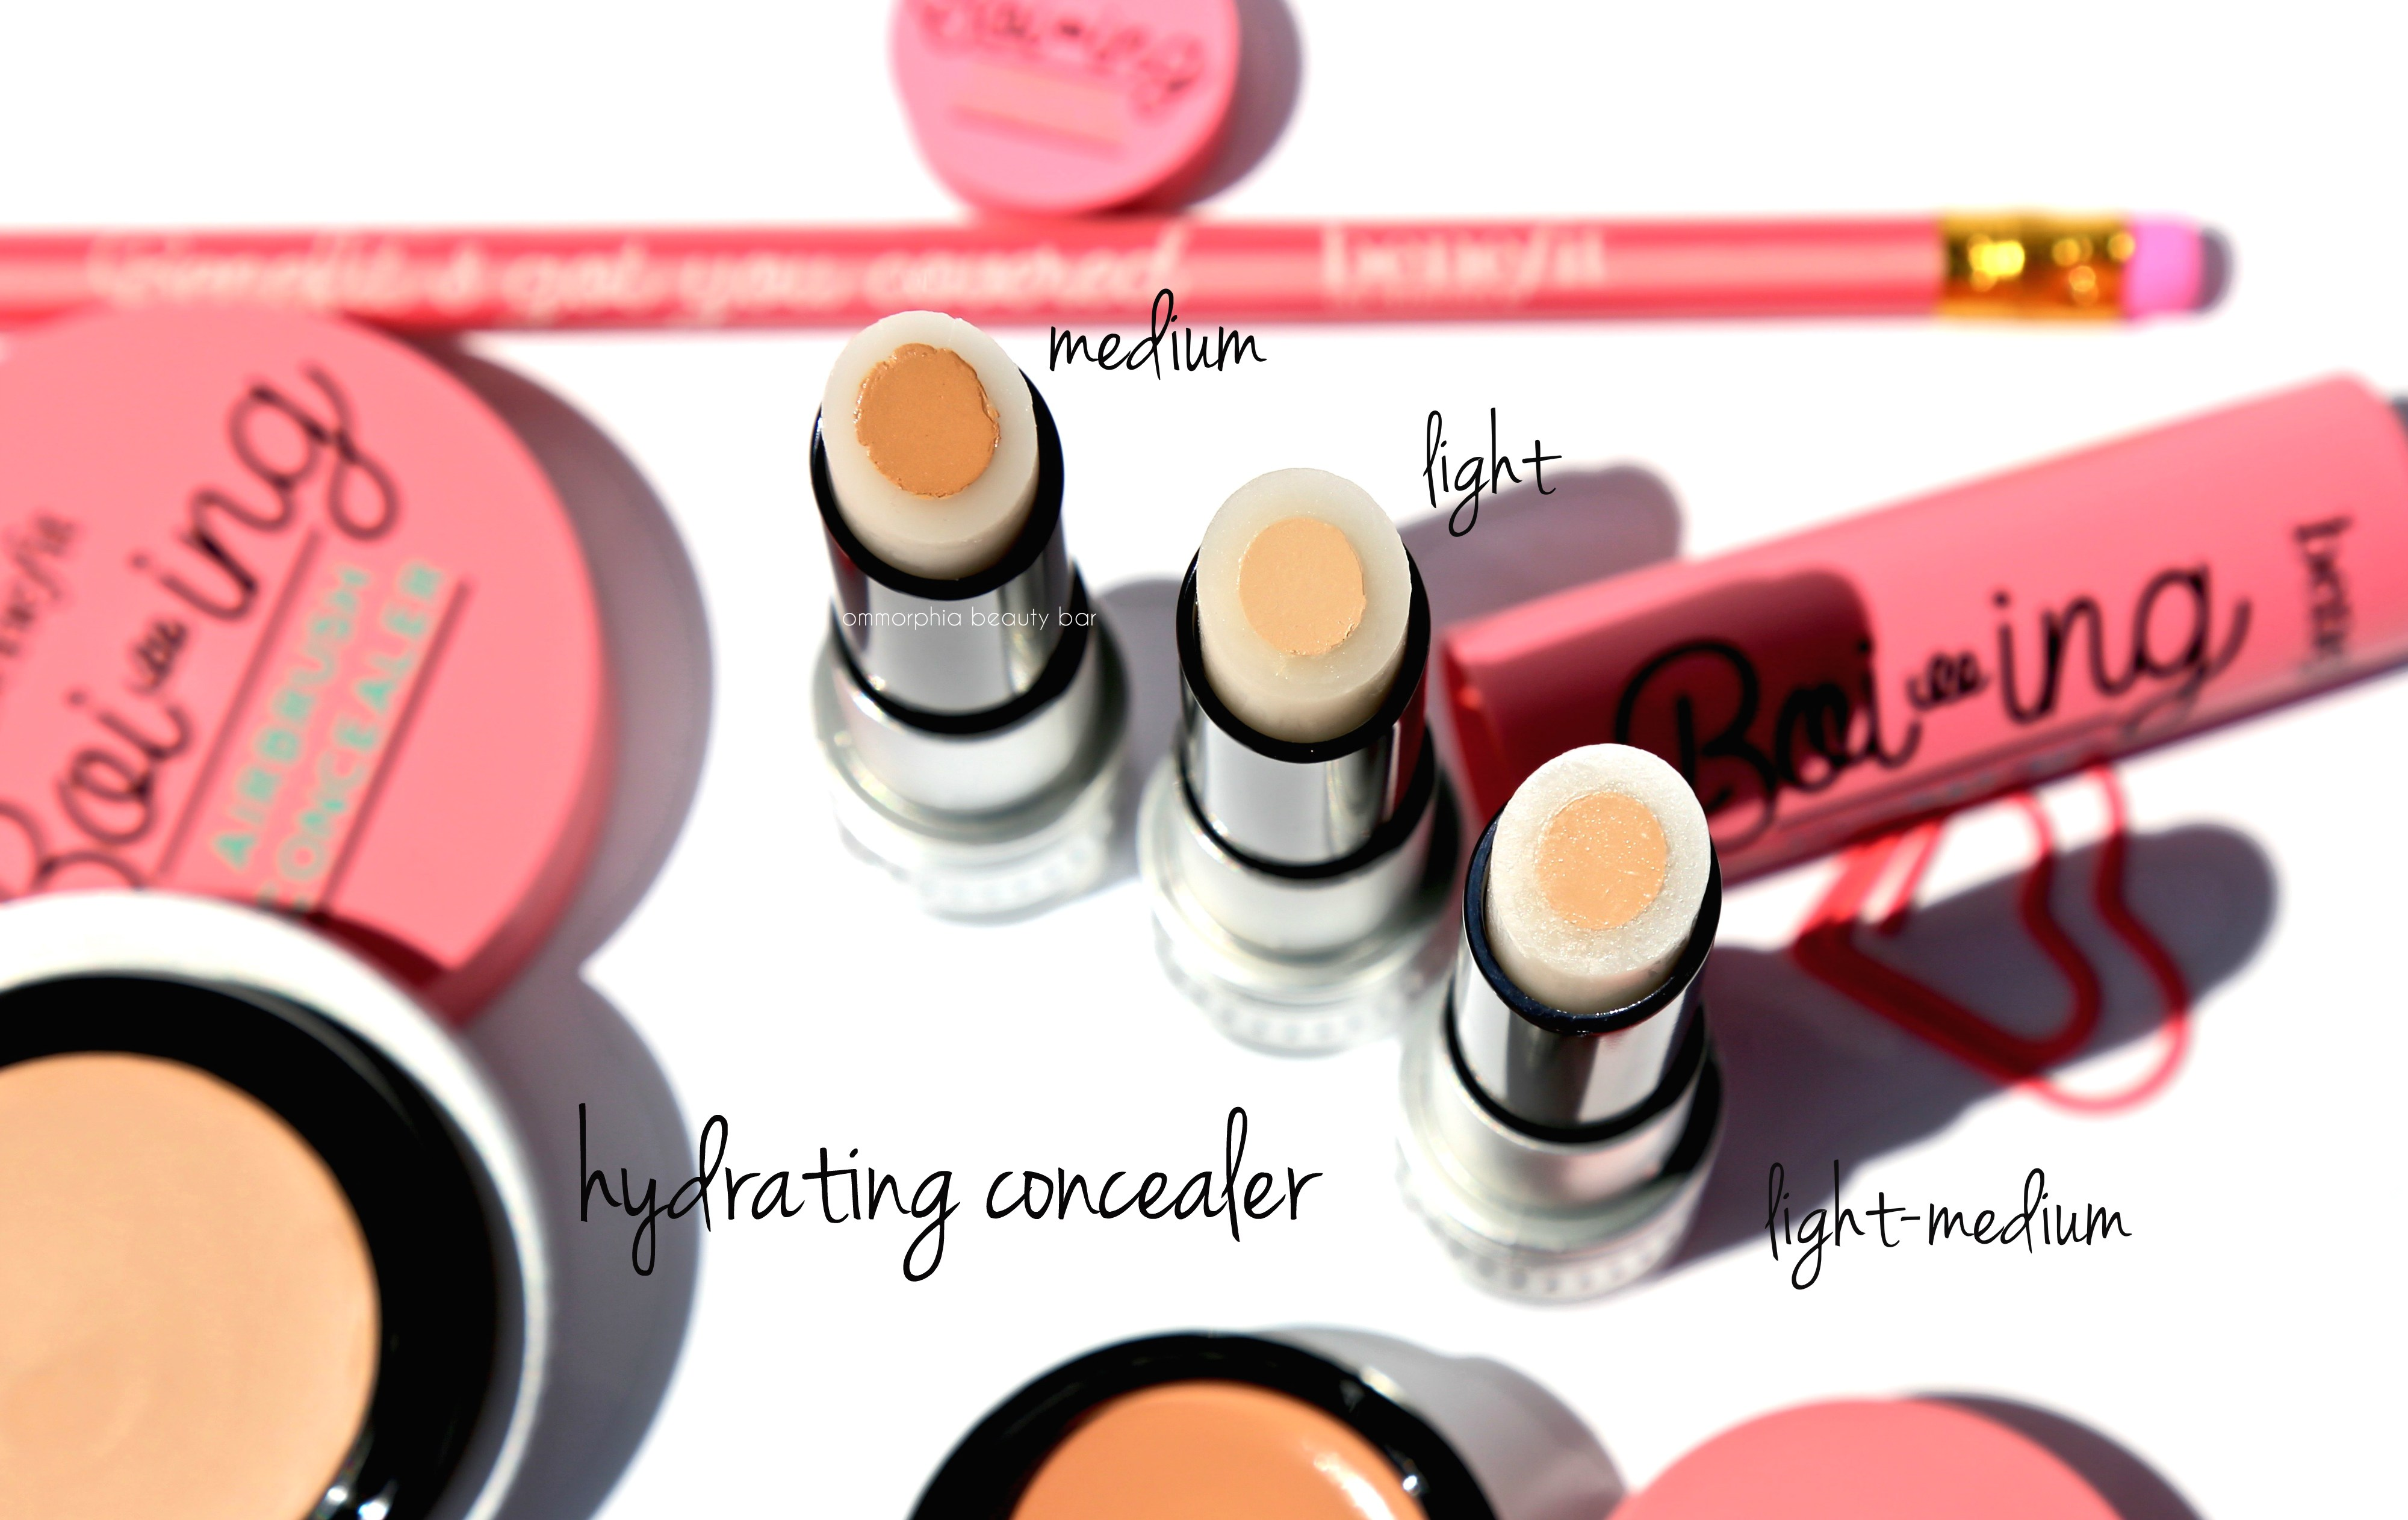 Benefit-Boiing-Hydrating-Concealers